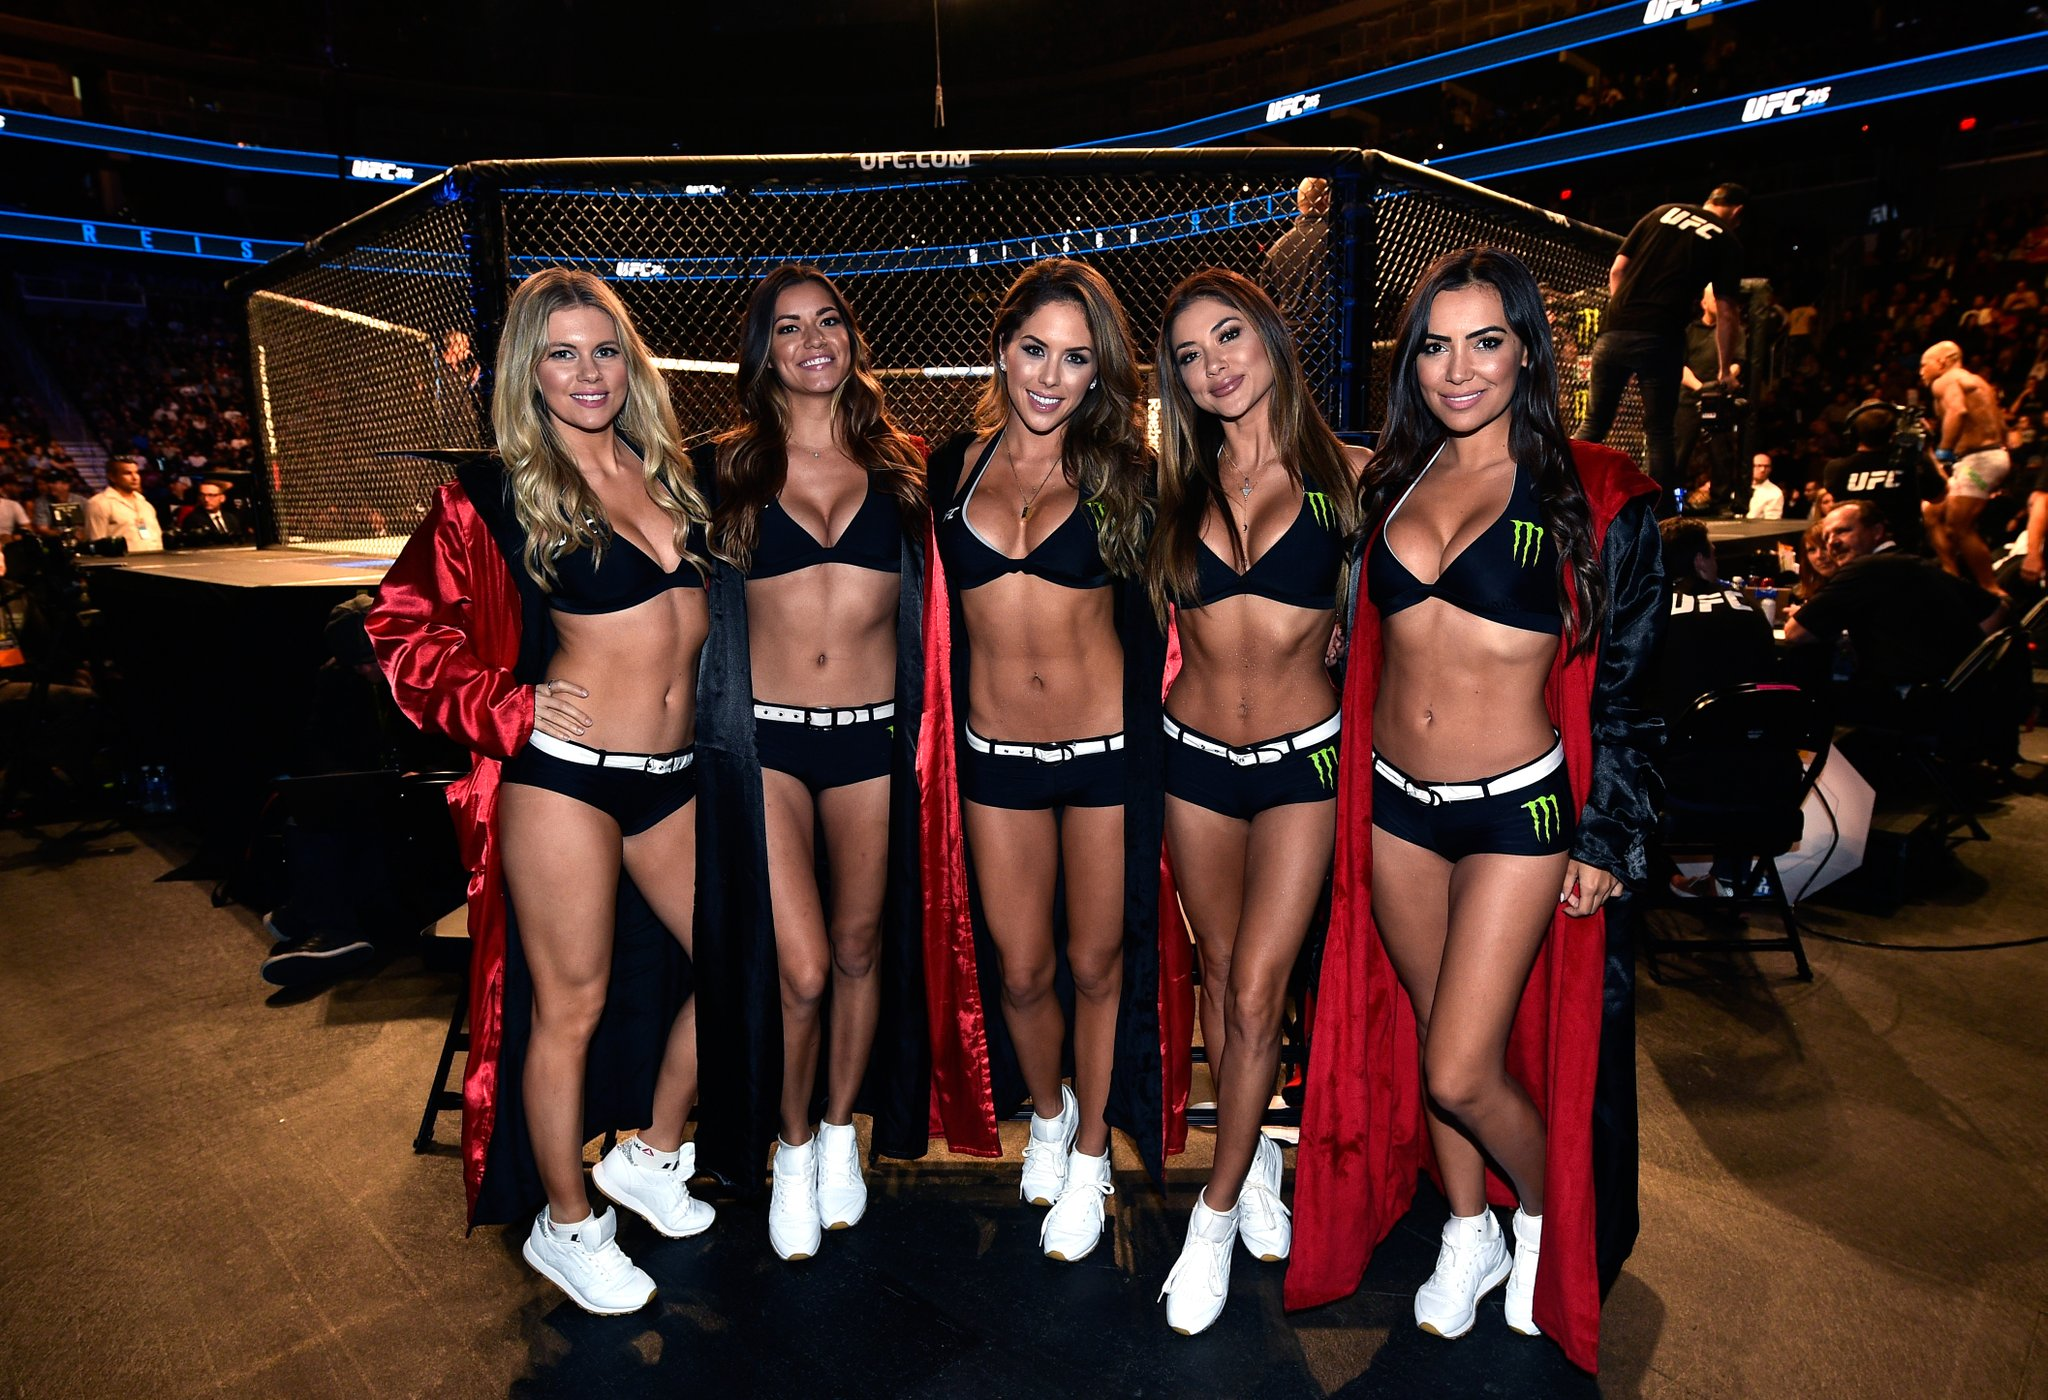 UFC 215 - Octagon Girls